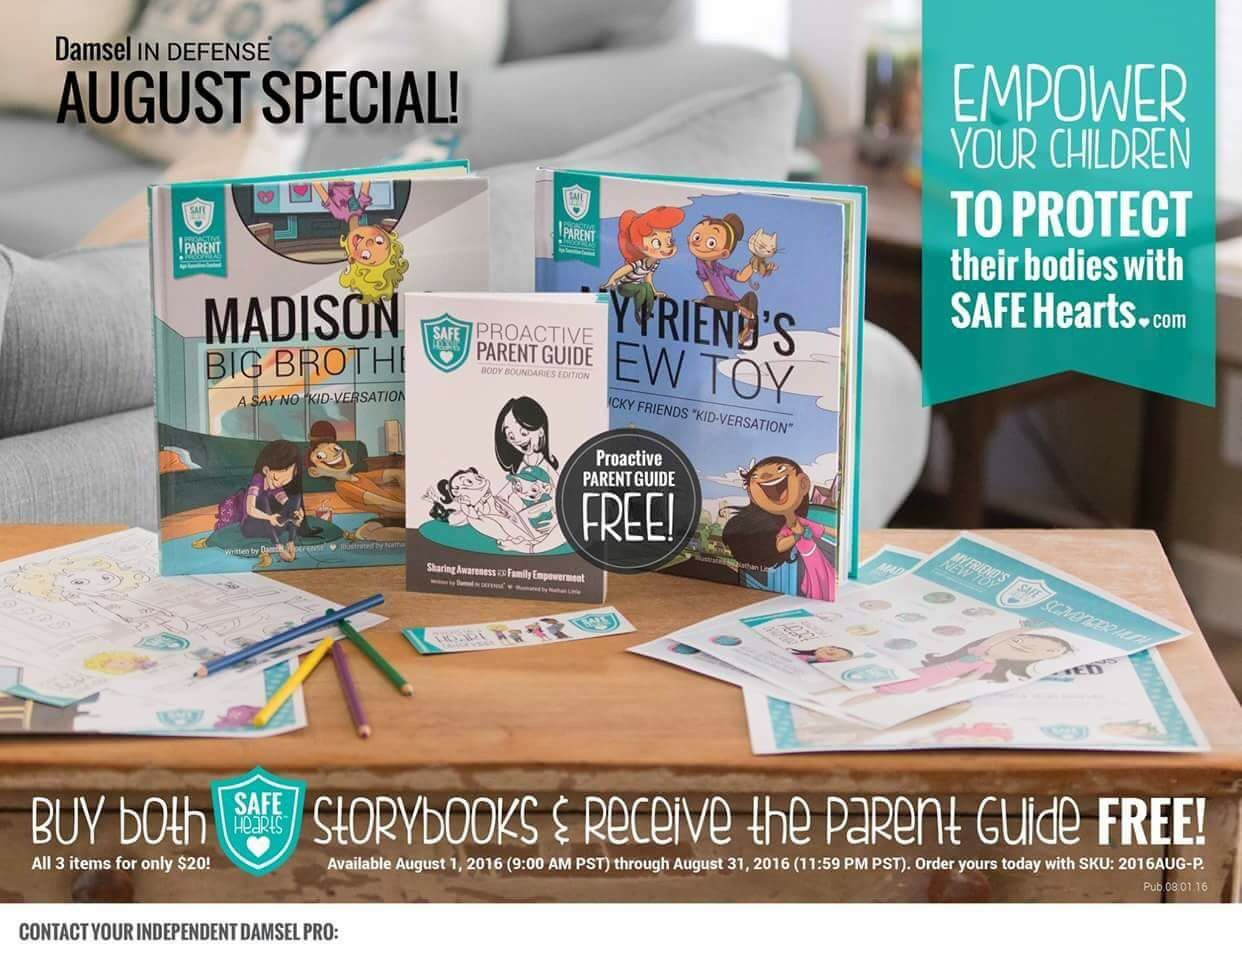 SAFE Hearts our new education based product line for